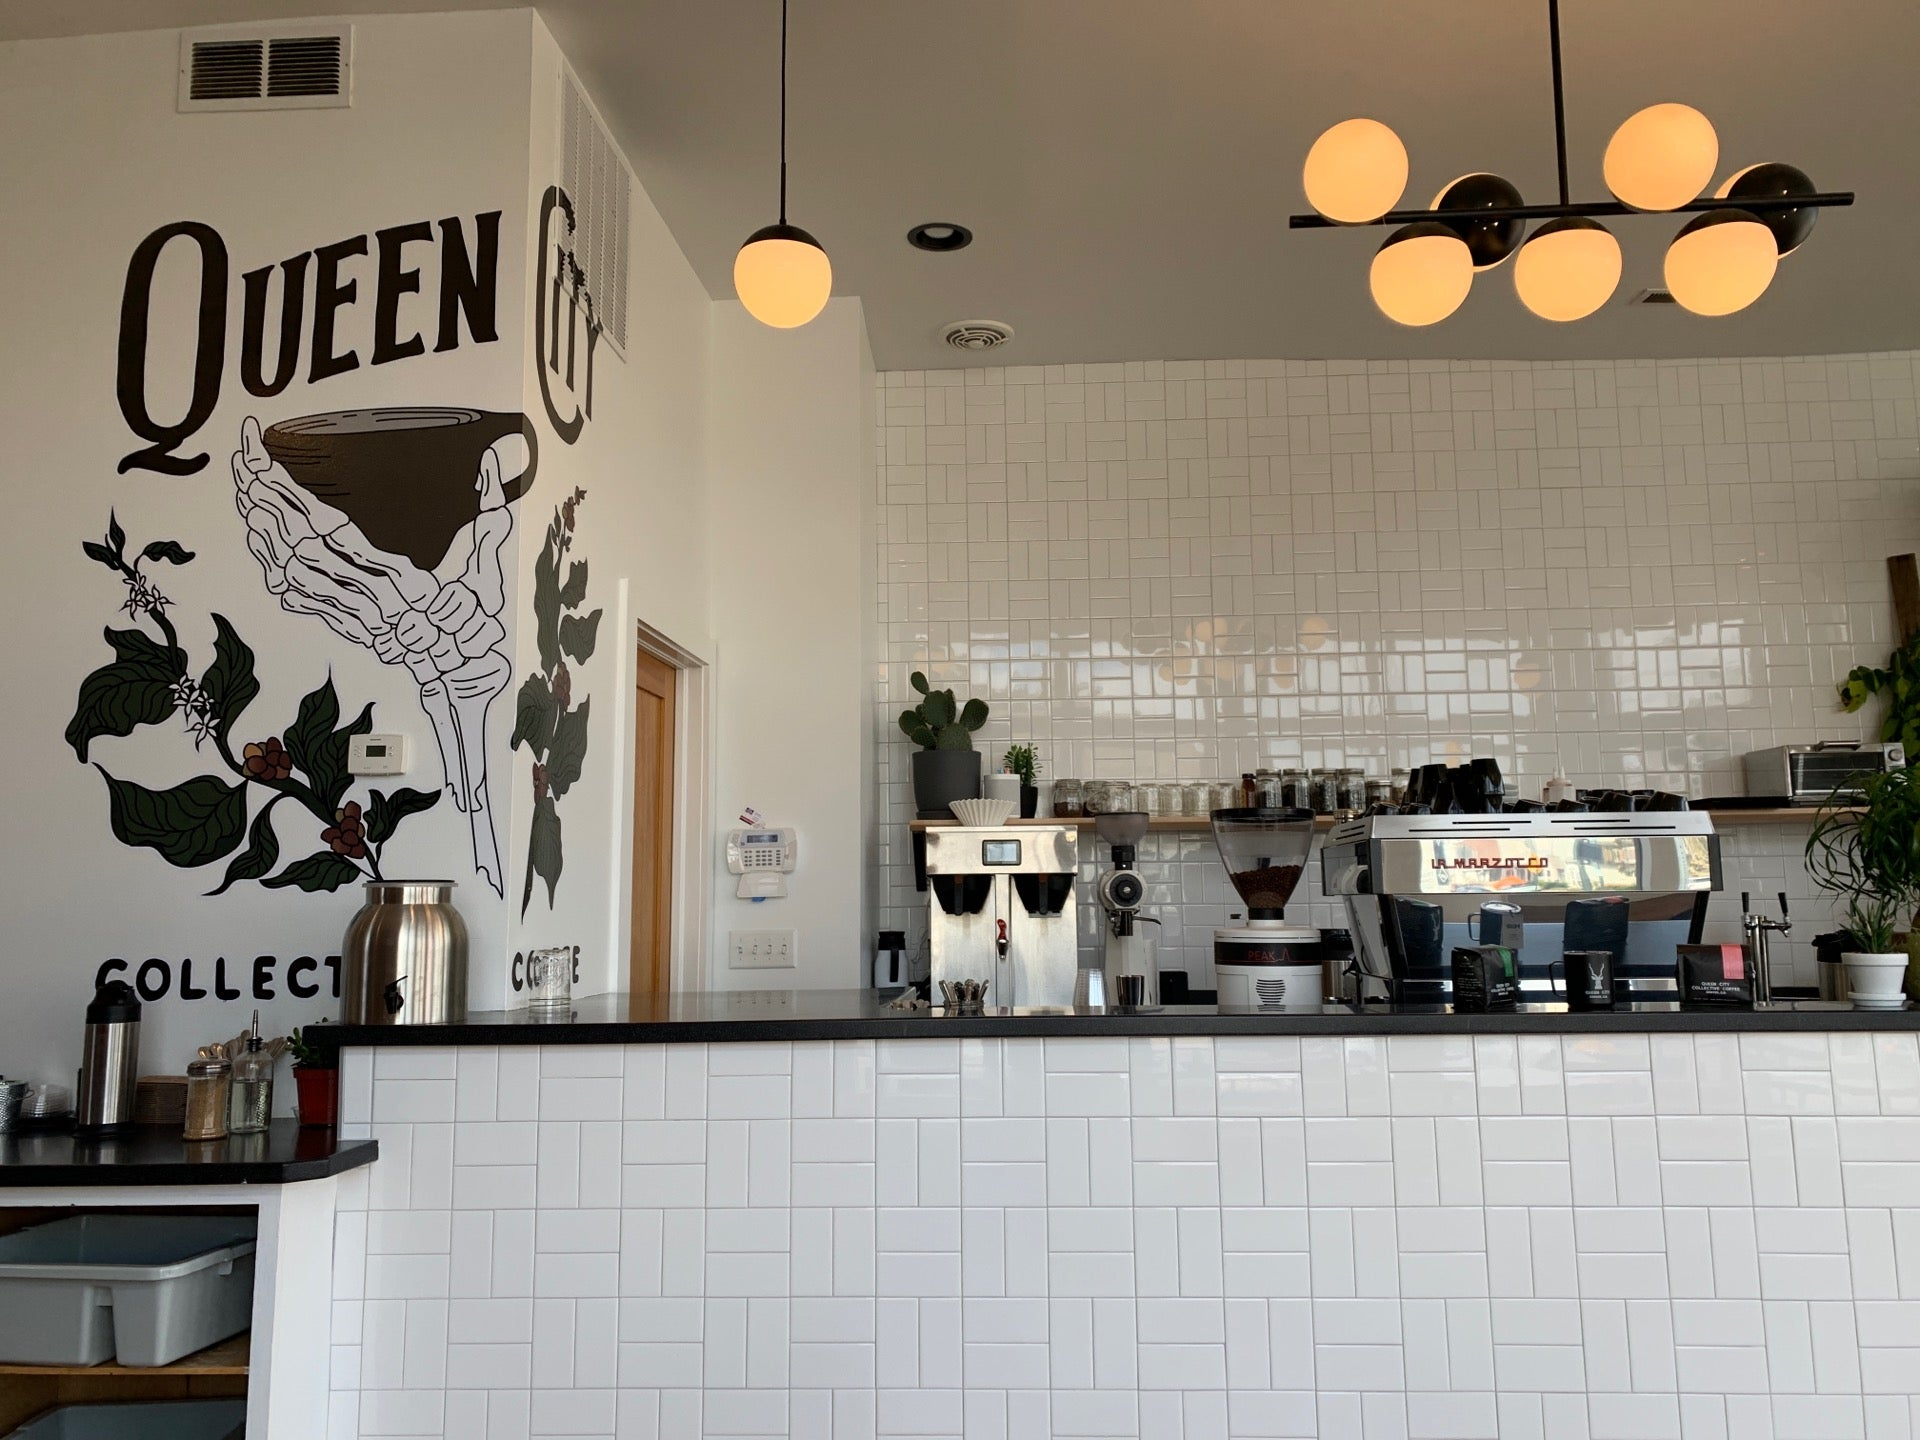 Checked in at Queen City Coffee Collective